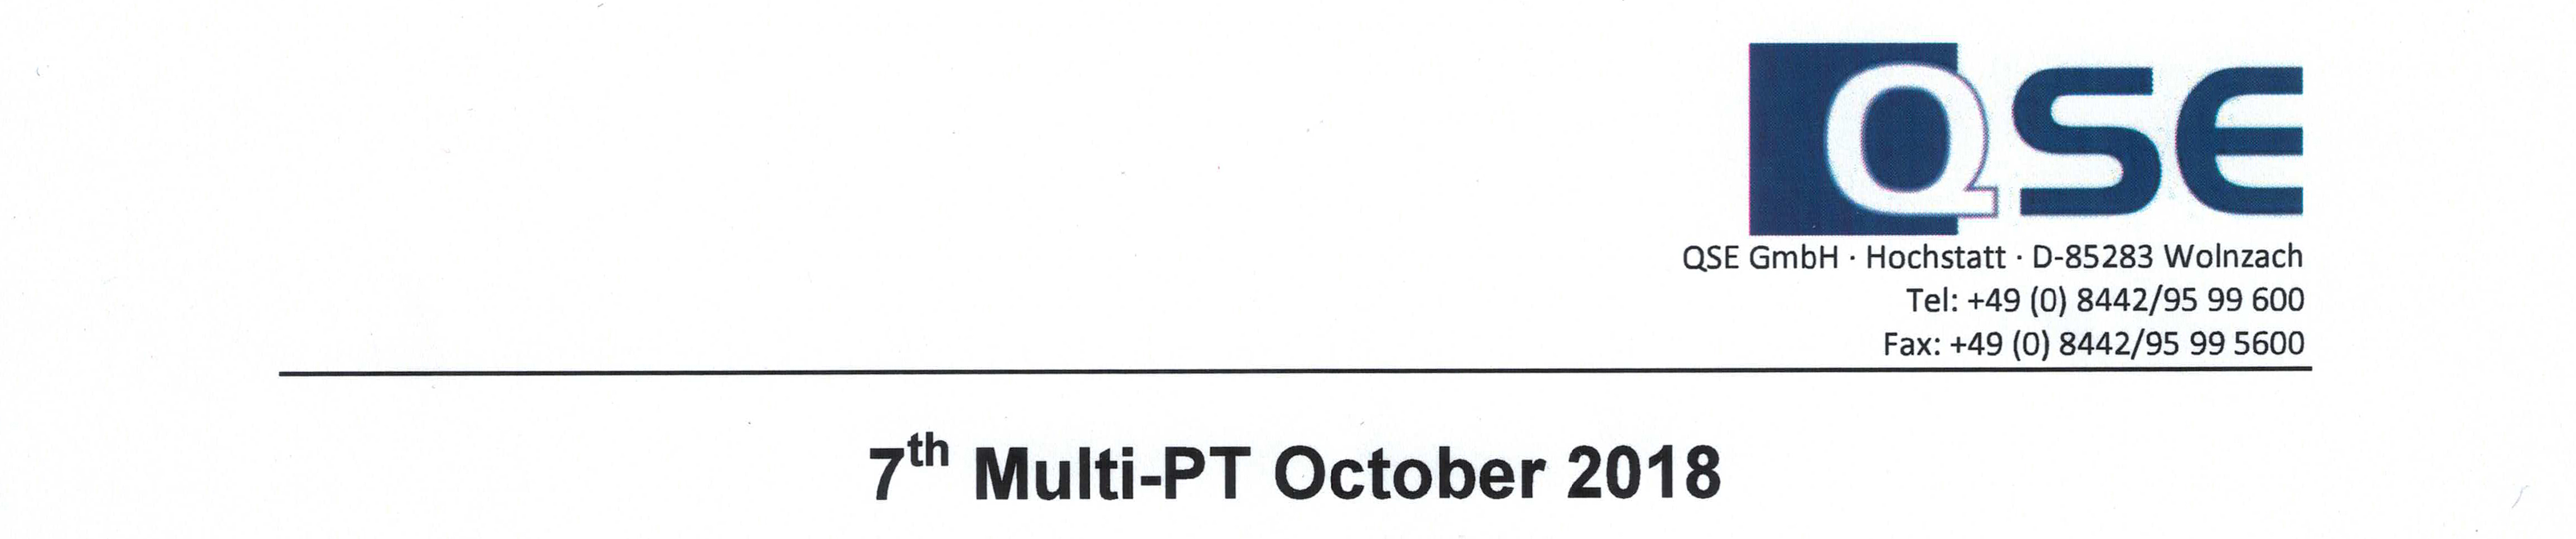 Successful participation in the 7th Multi-PT October 2018 Proficiency testing of QSE GmbH, Germany